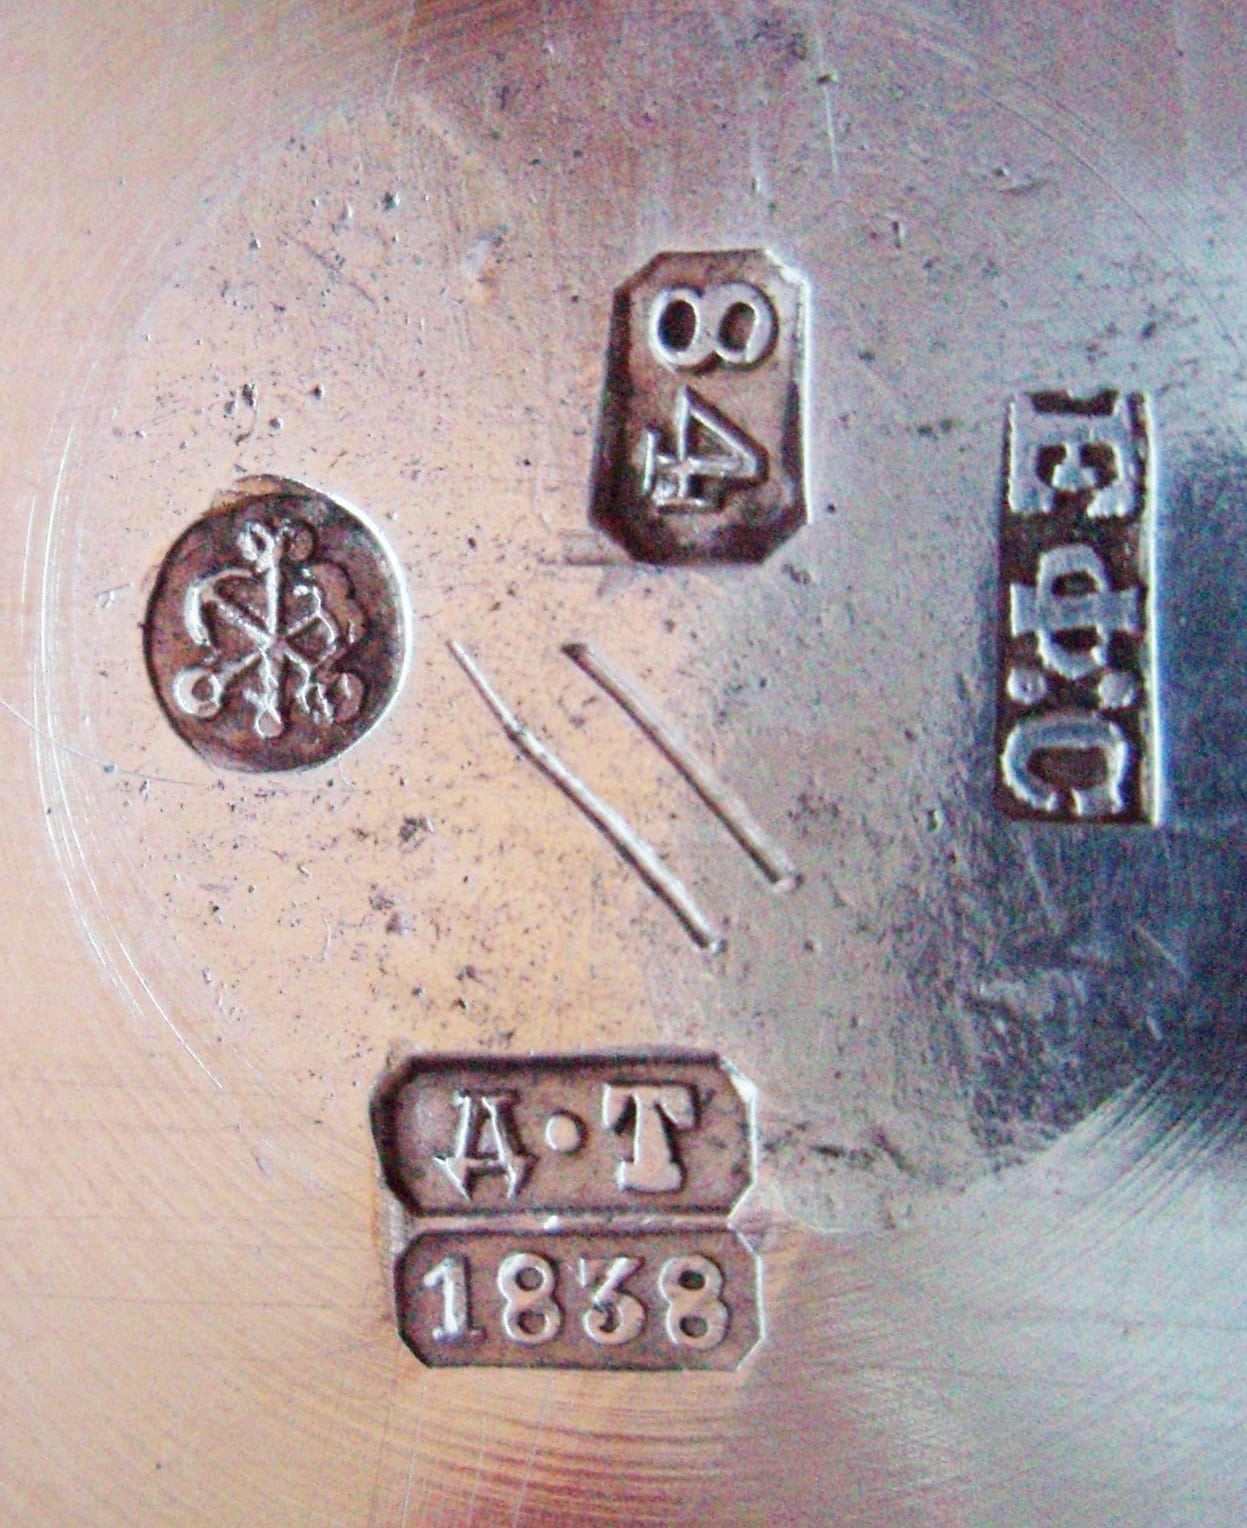 Typical 19th Century Russian Hallmarks. St. Petersburg, 1838. Image Courtesy of the Hallmark Research Institute